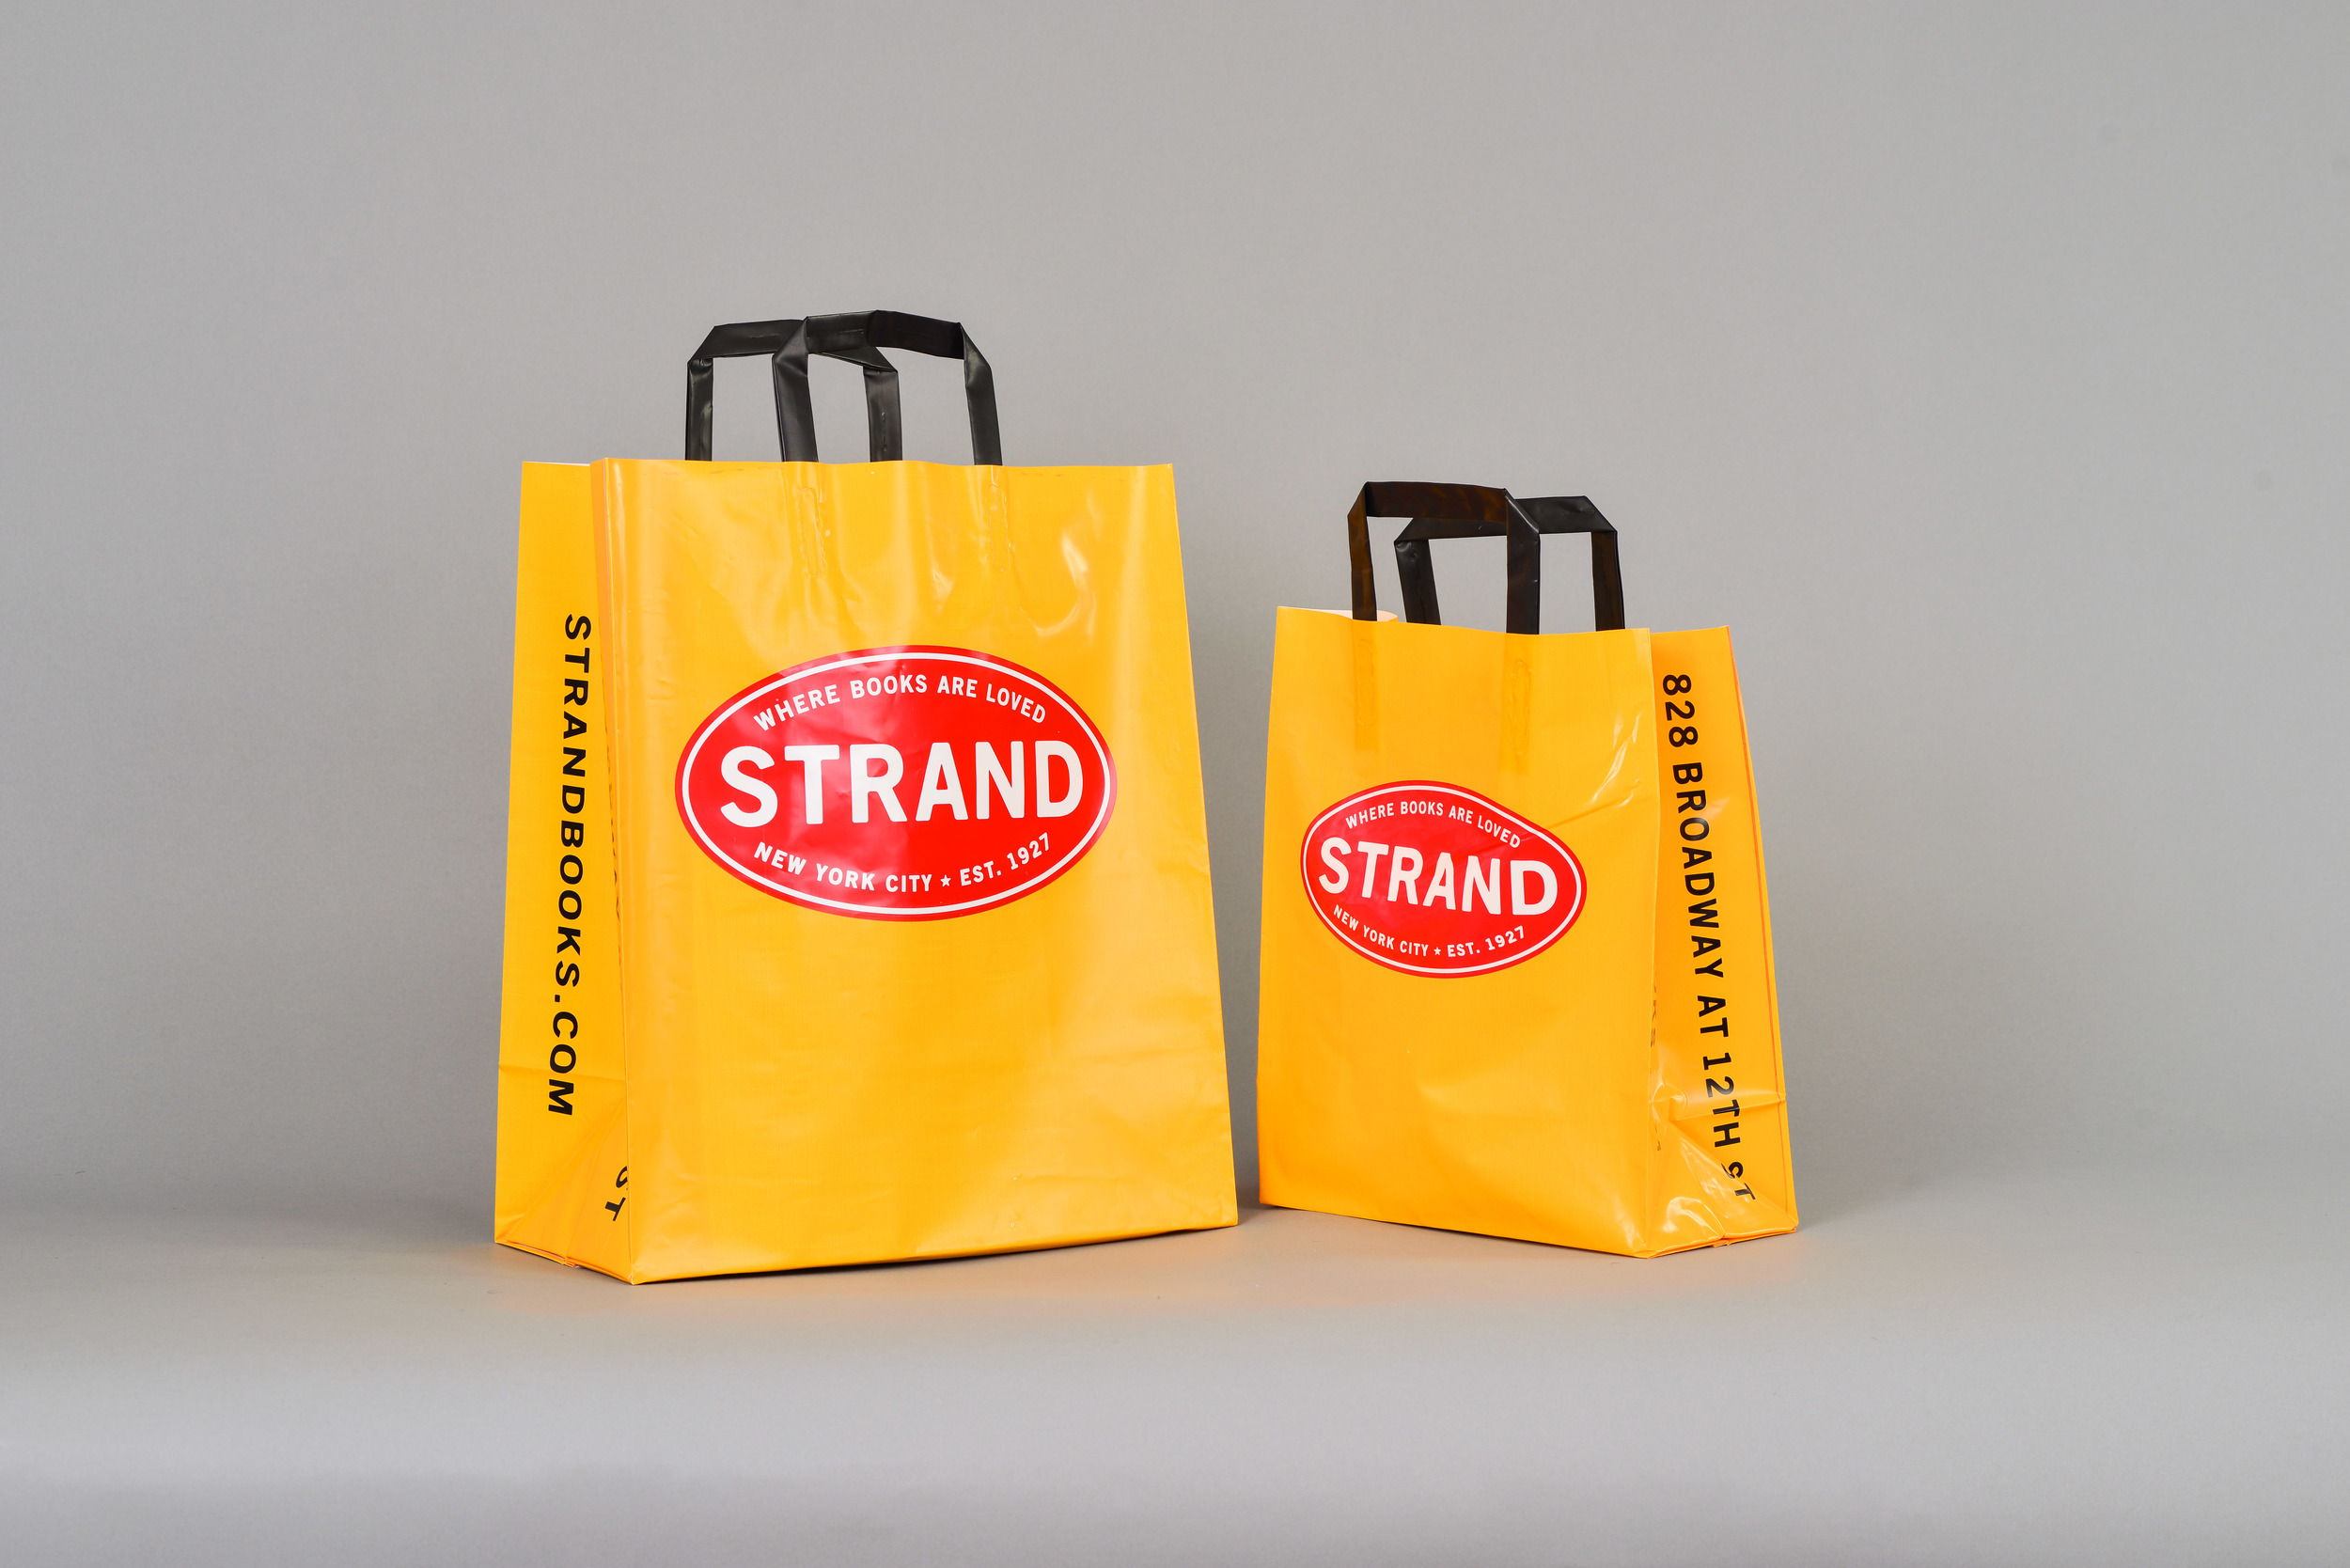 CPI Packaging - The Strand